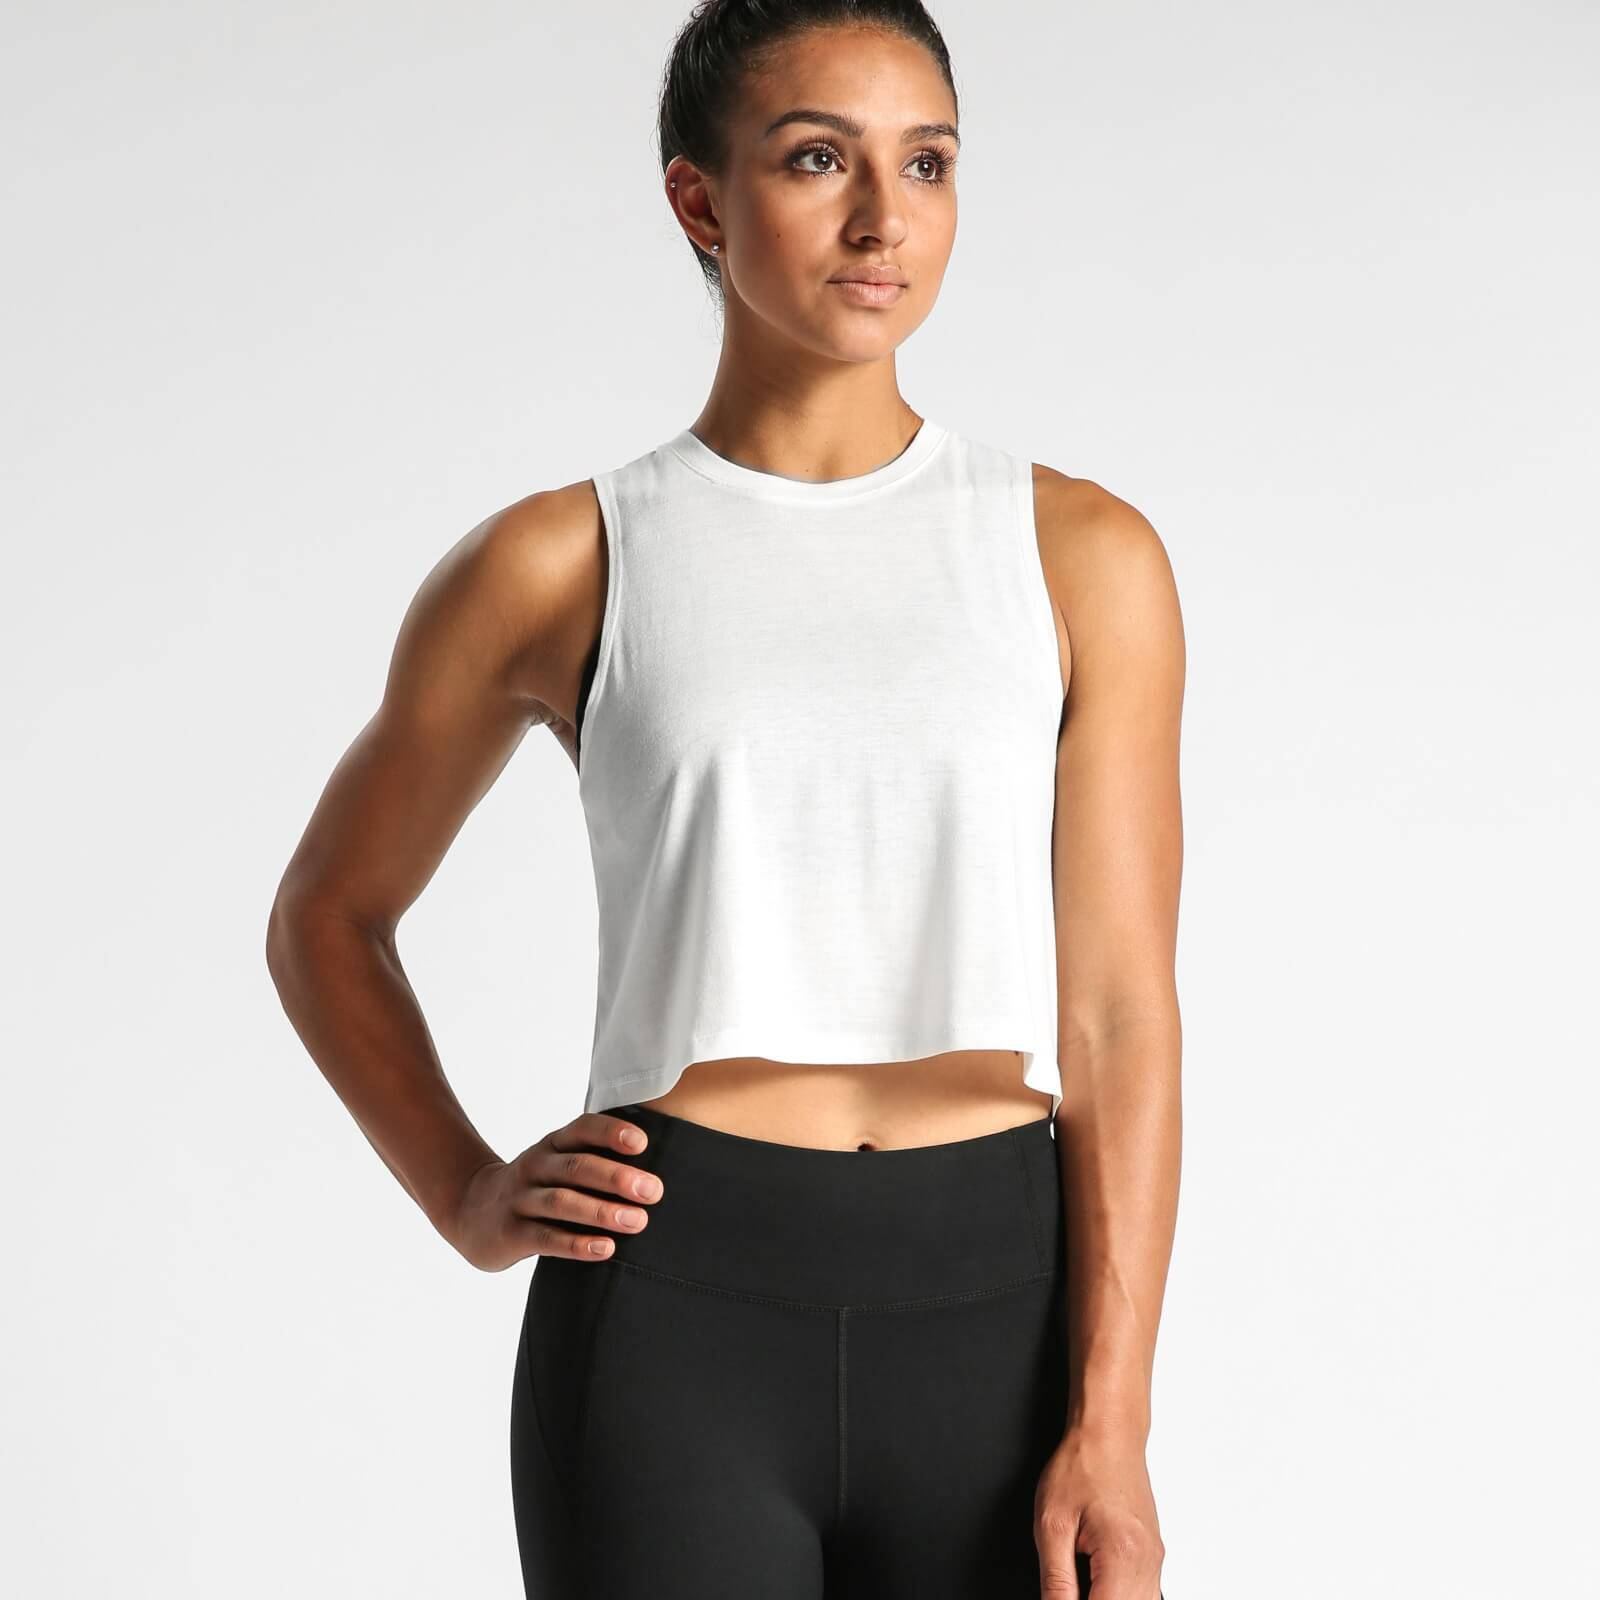 IdealFit Flowy Crop Top - White - XL - White